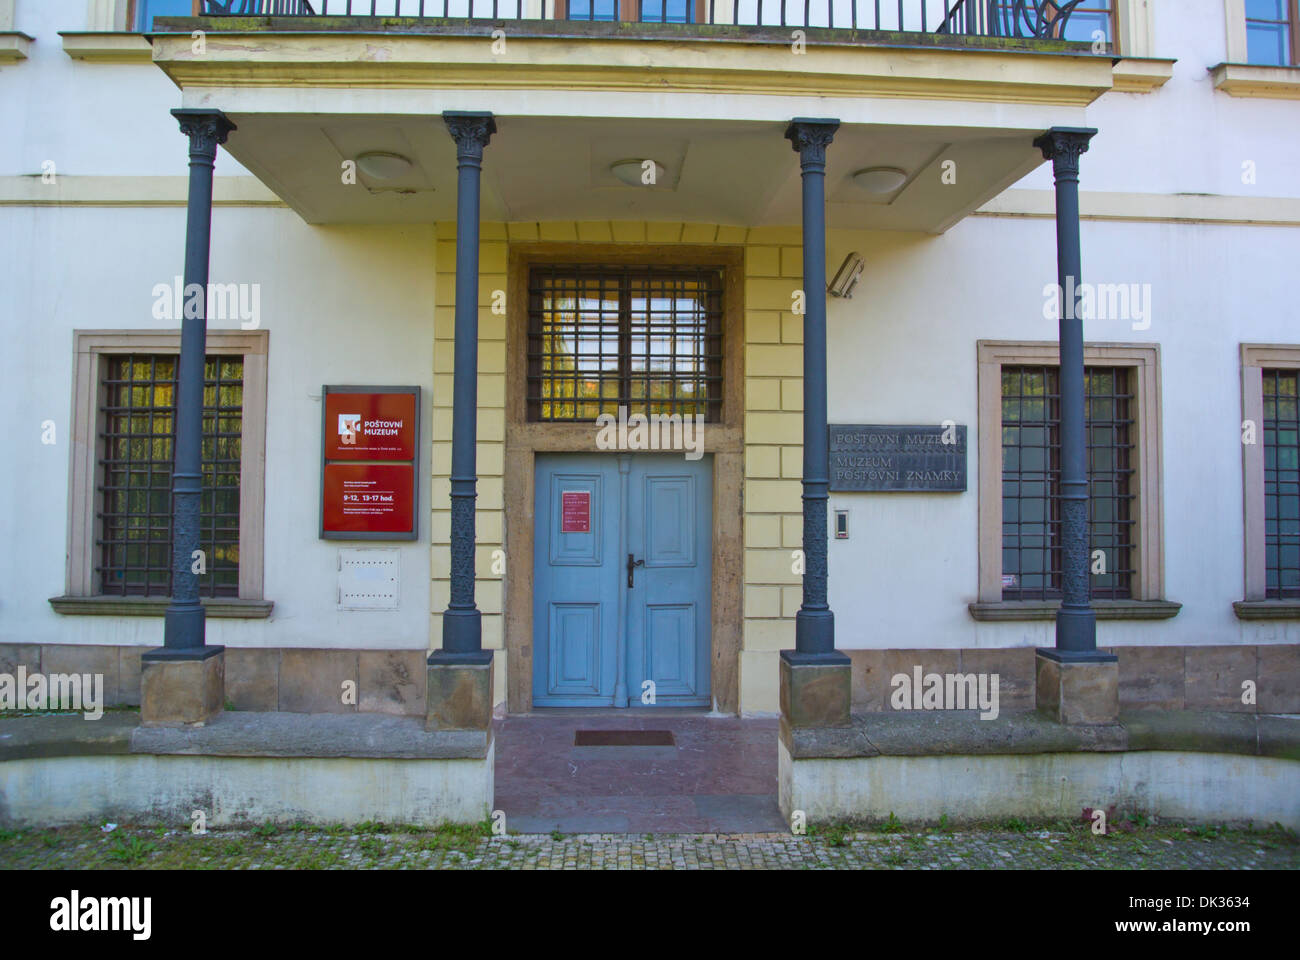 Postovni Muzeum the postal museum new town Prague Czech Republic Europe - Stock Image